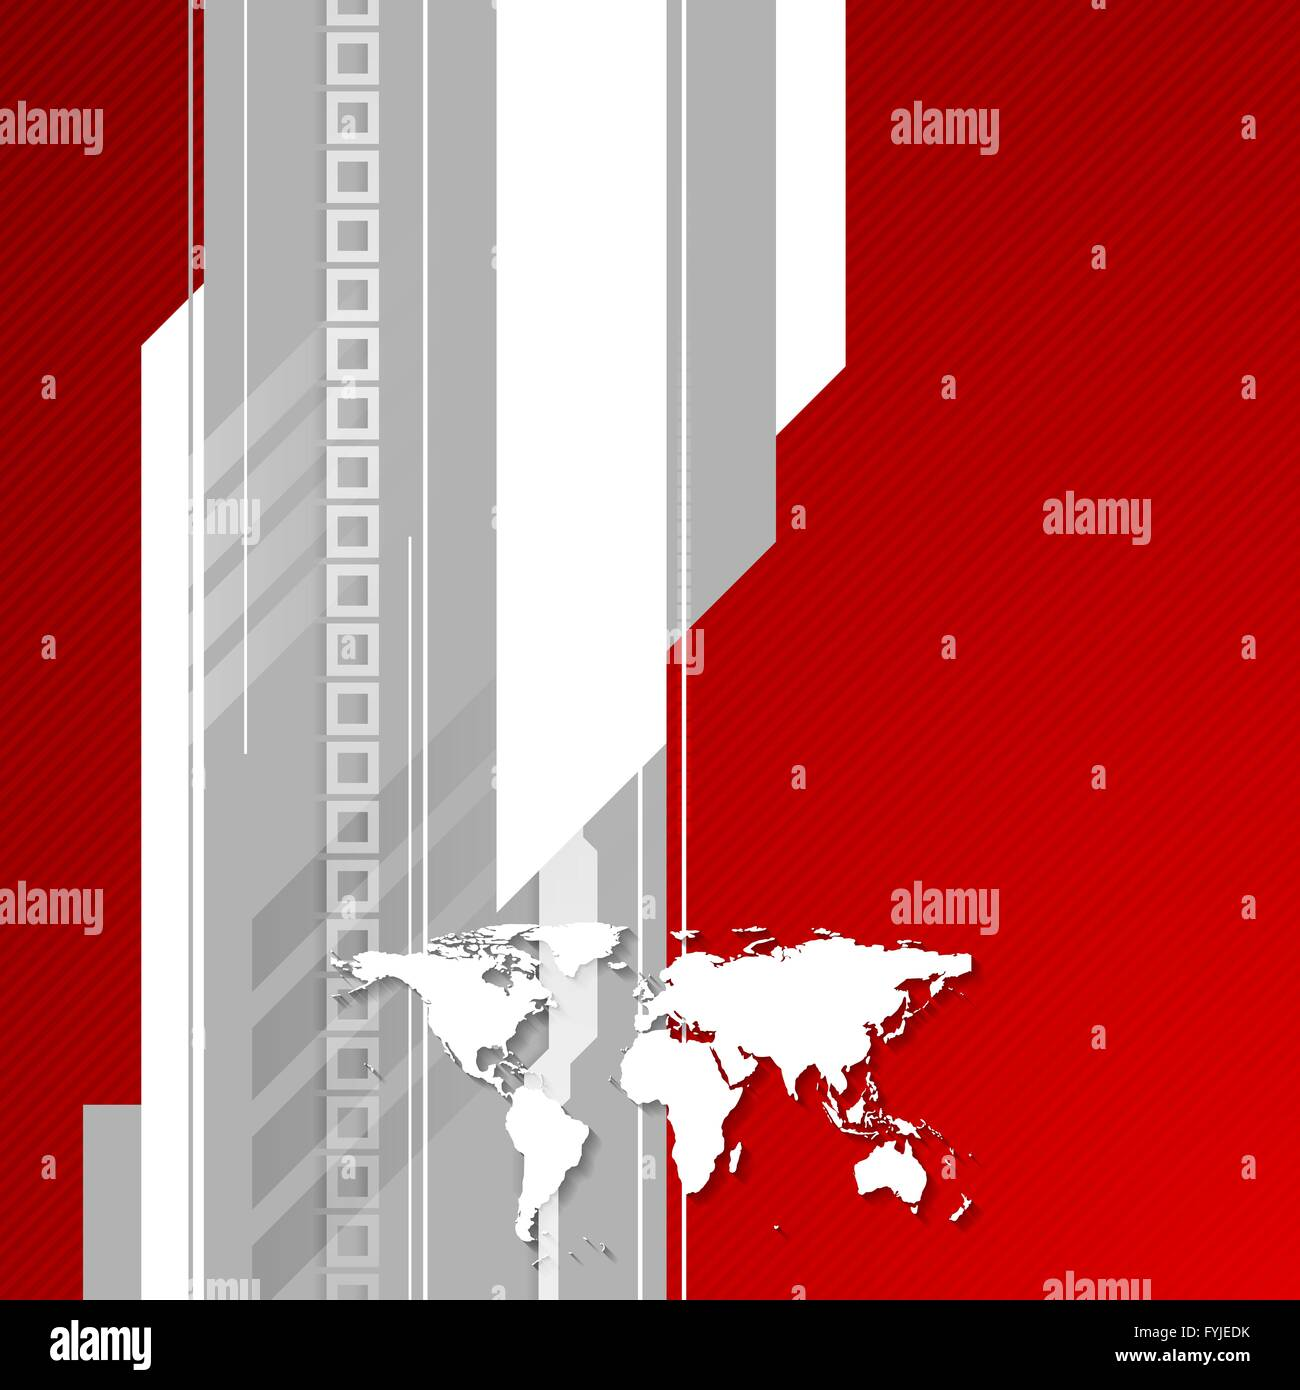 Red and grey technology background with world map stock photo red and grey technology background with world map gumiabroncs Choice Image